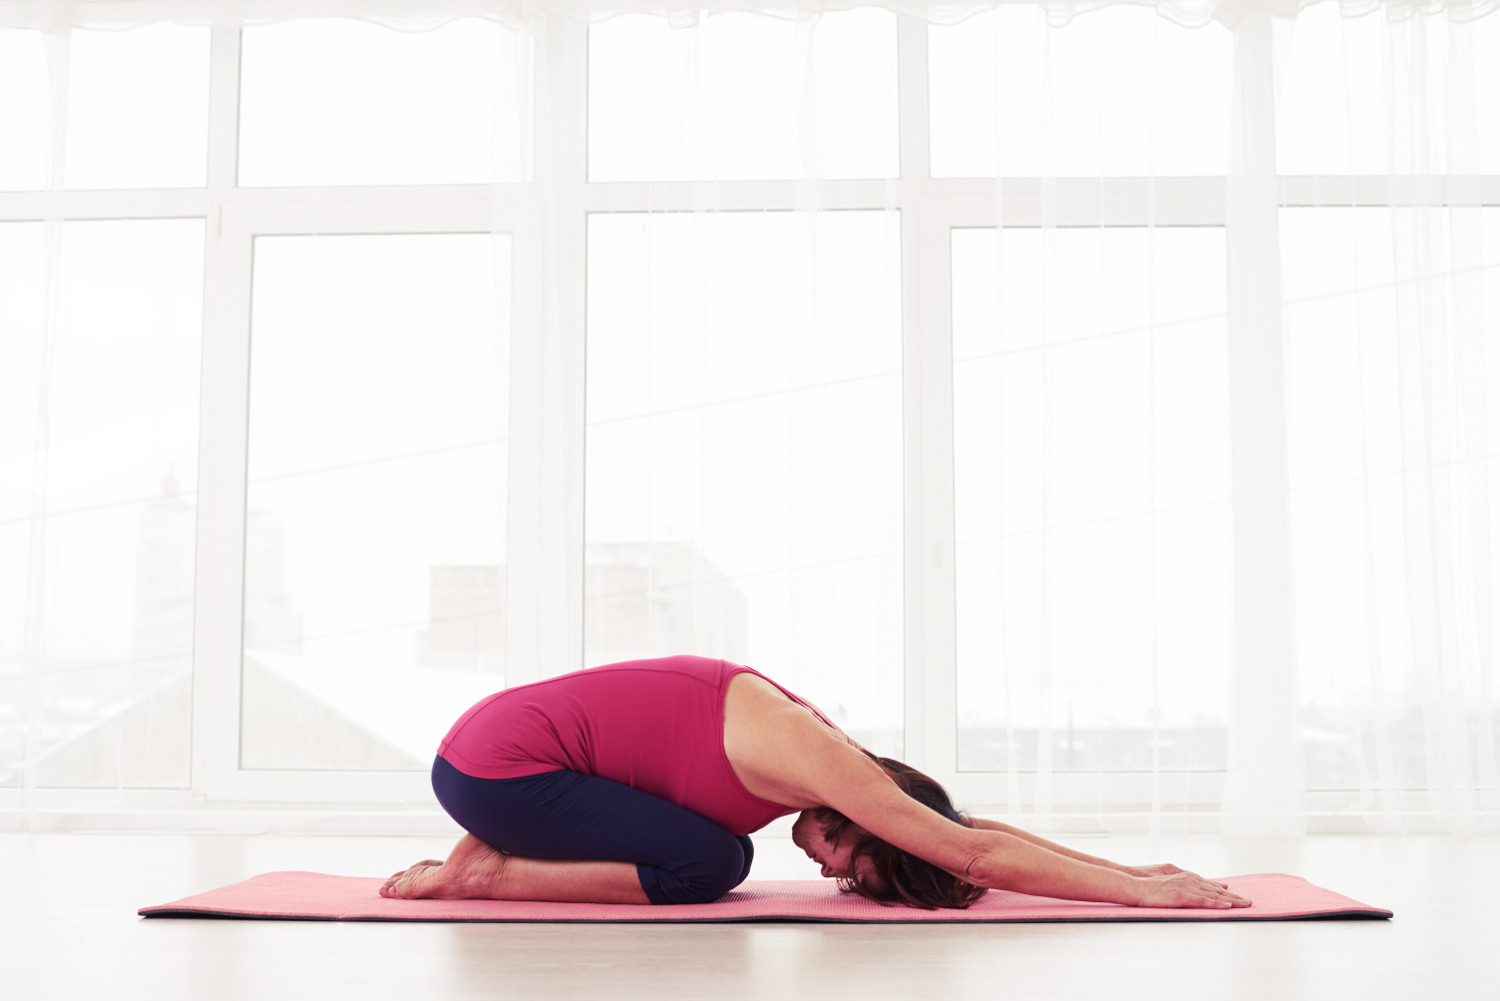 Easy stretches to help reduce back pain